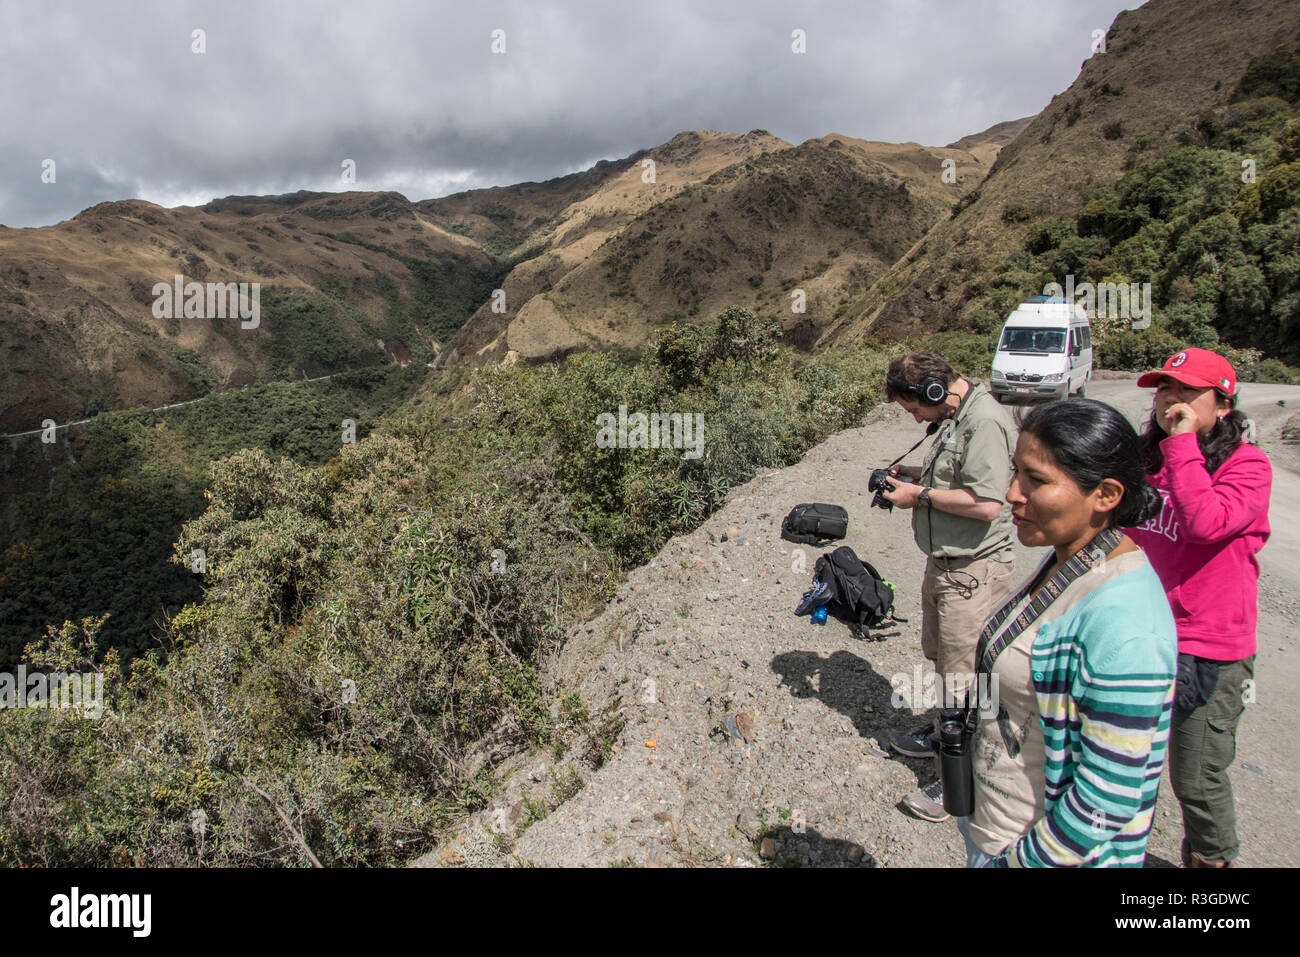 Members of an ecotour stop to look out at a vista along the Manu road in Peru. The road leads through the high Andes mountains. - Stock Image